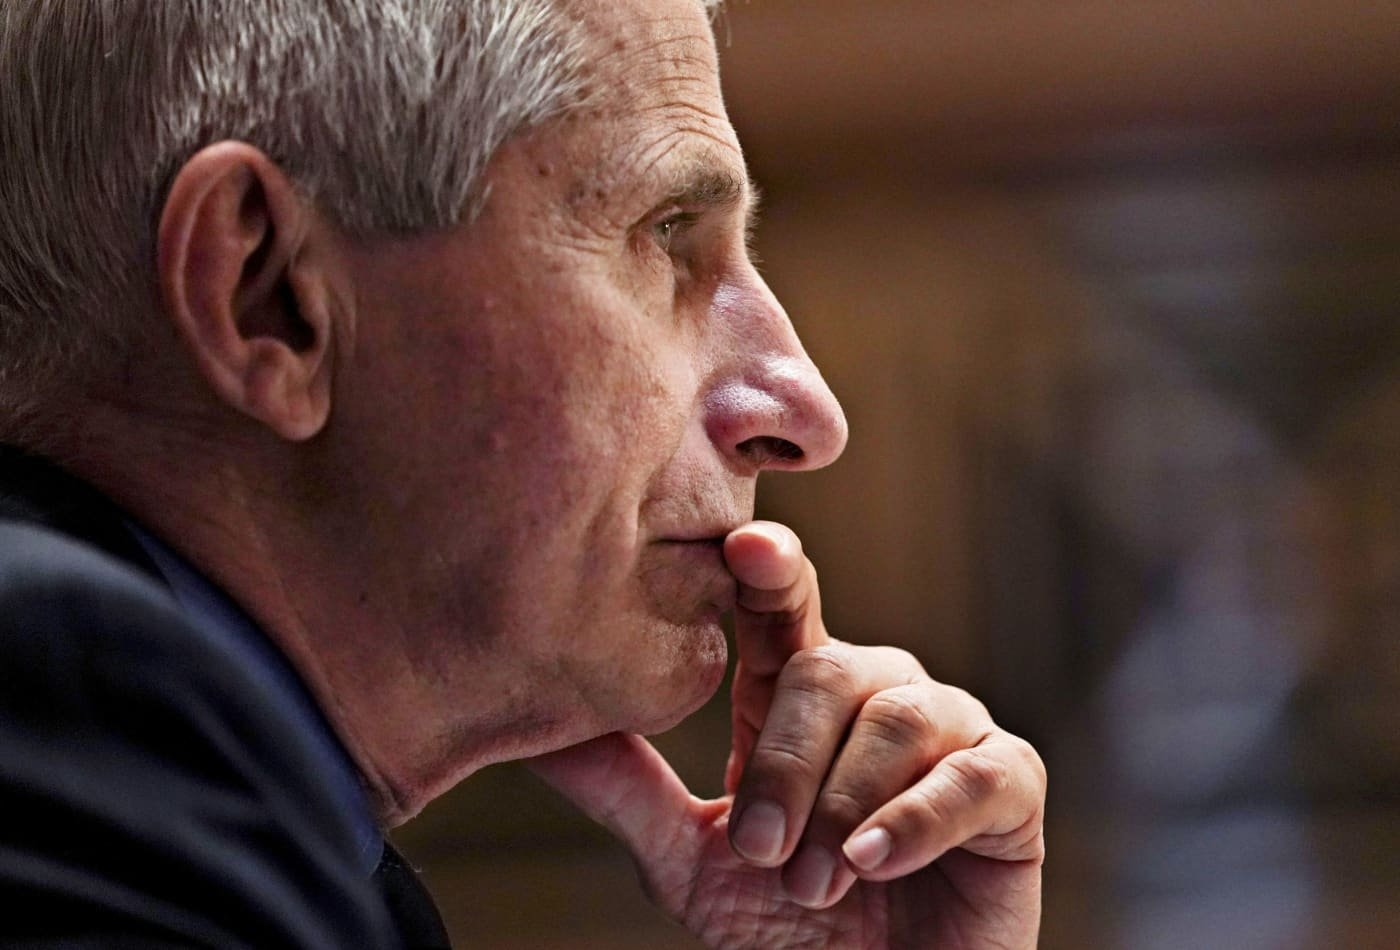 Third Covid vaccine shot for people with weakened immune systems 'very high priority,' Fauci says